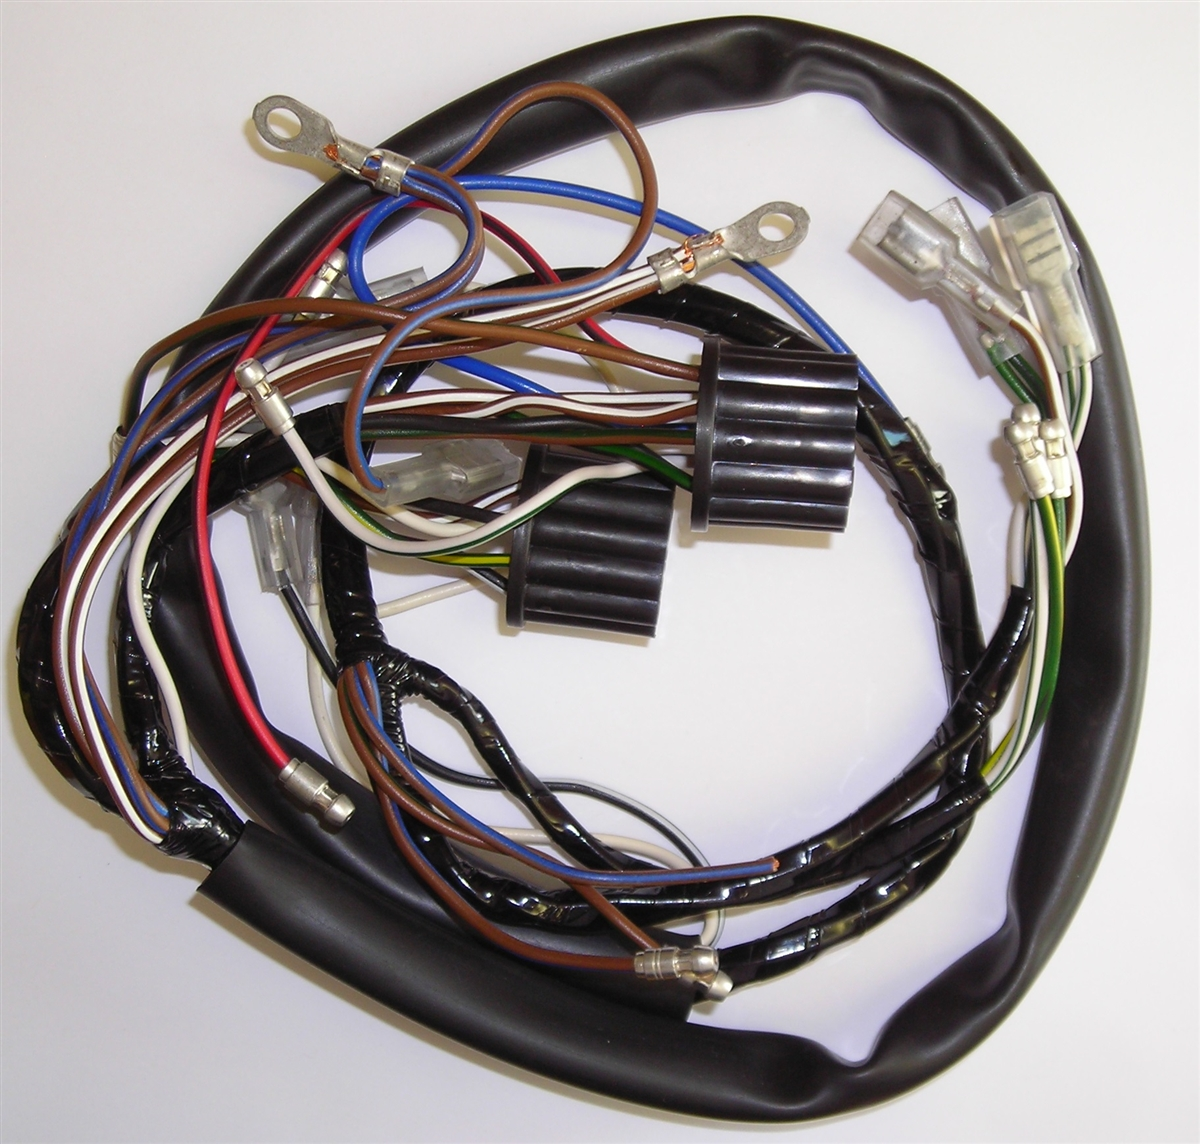 triumph motorcycle wiring harness rh britishwiring com motorcycle wiring harness restoration motorcycle wiring harness parts